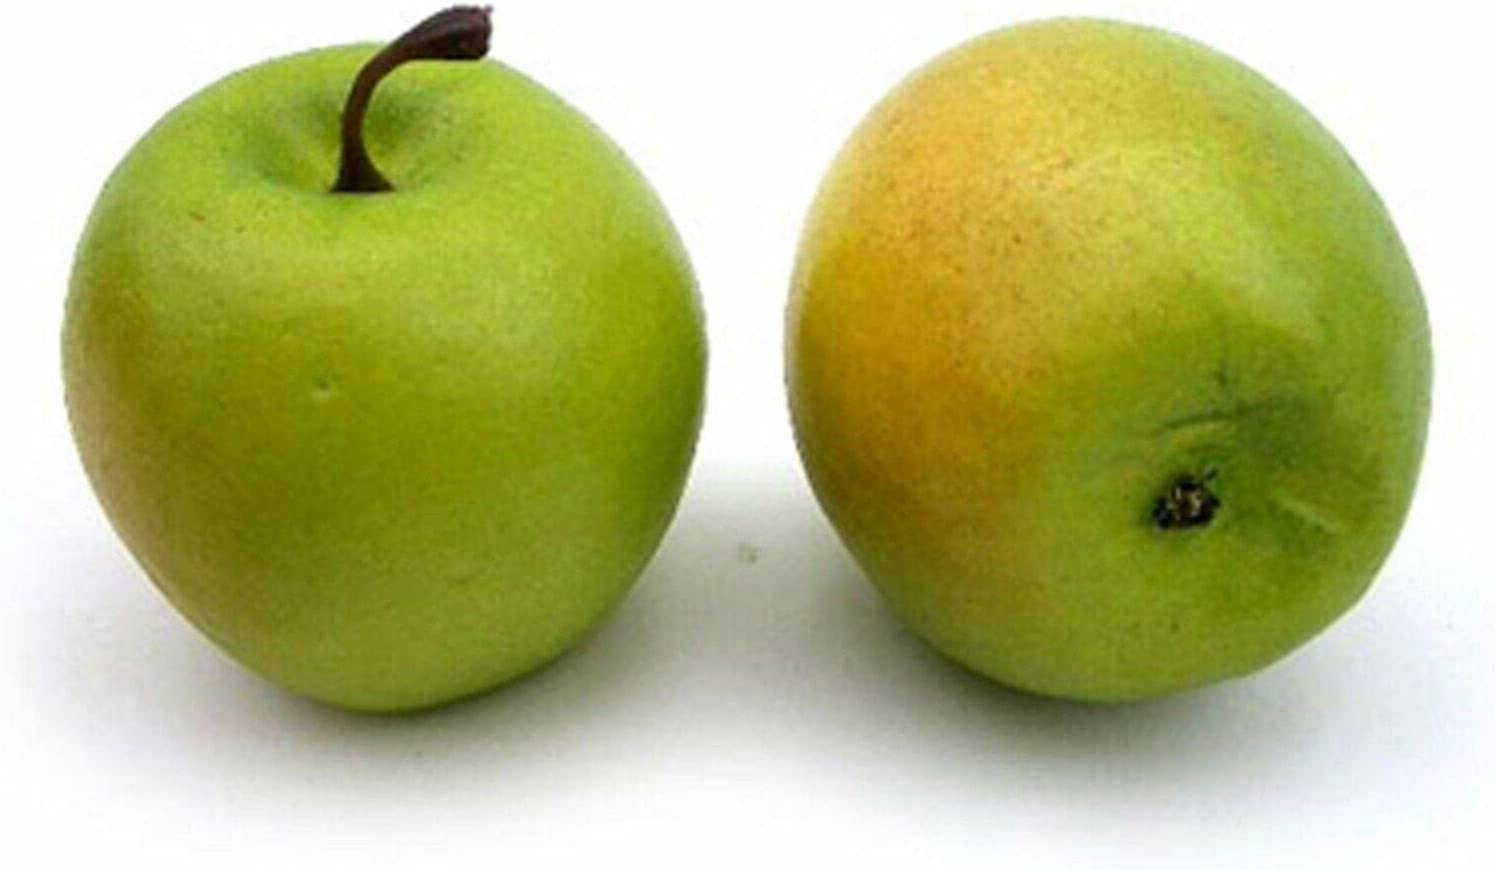 Artificial Green Award Yellow Blush Apple of Bag Decorative Small All items free shipping 24